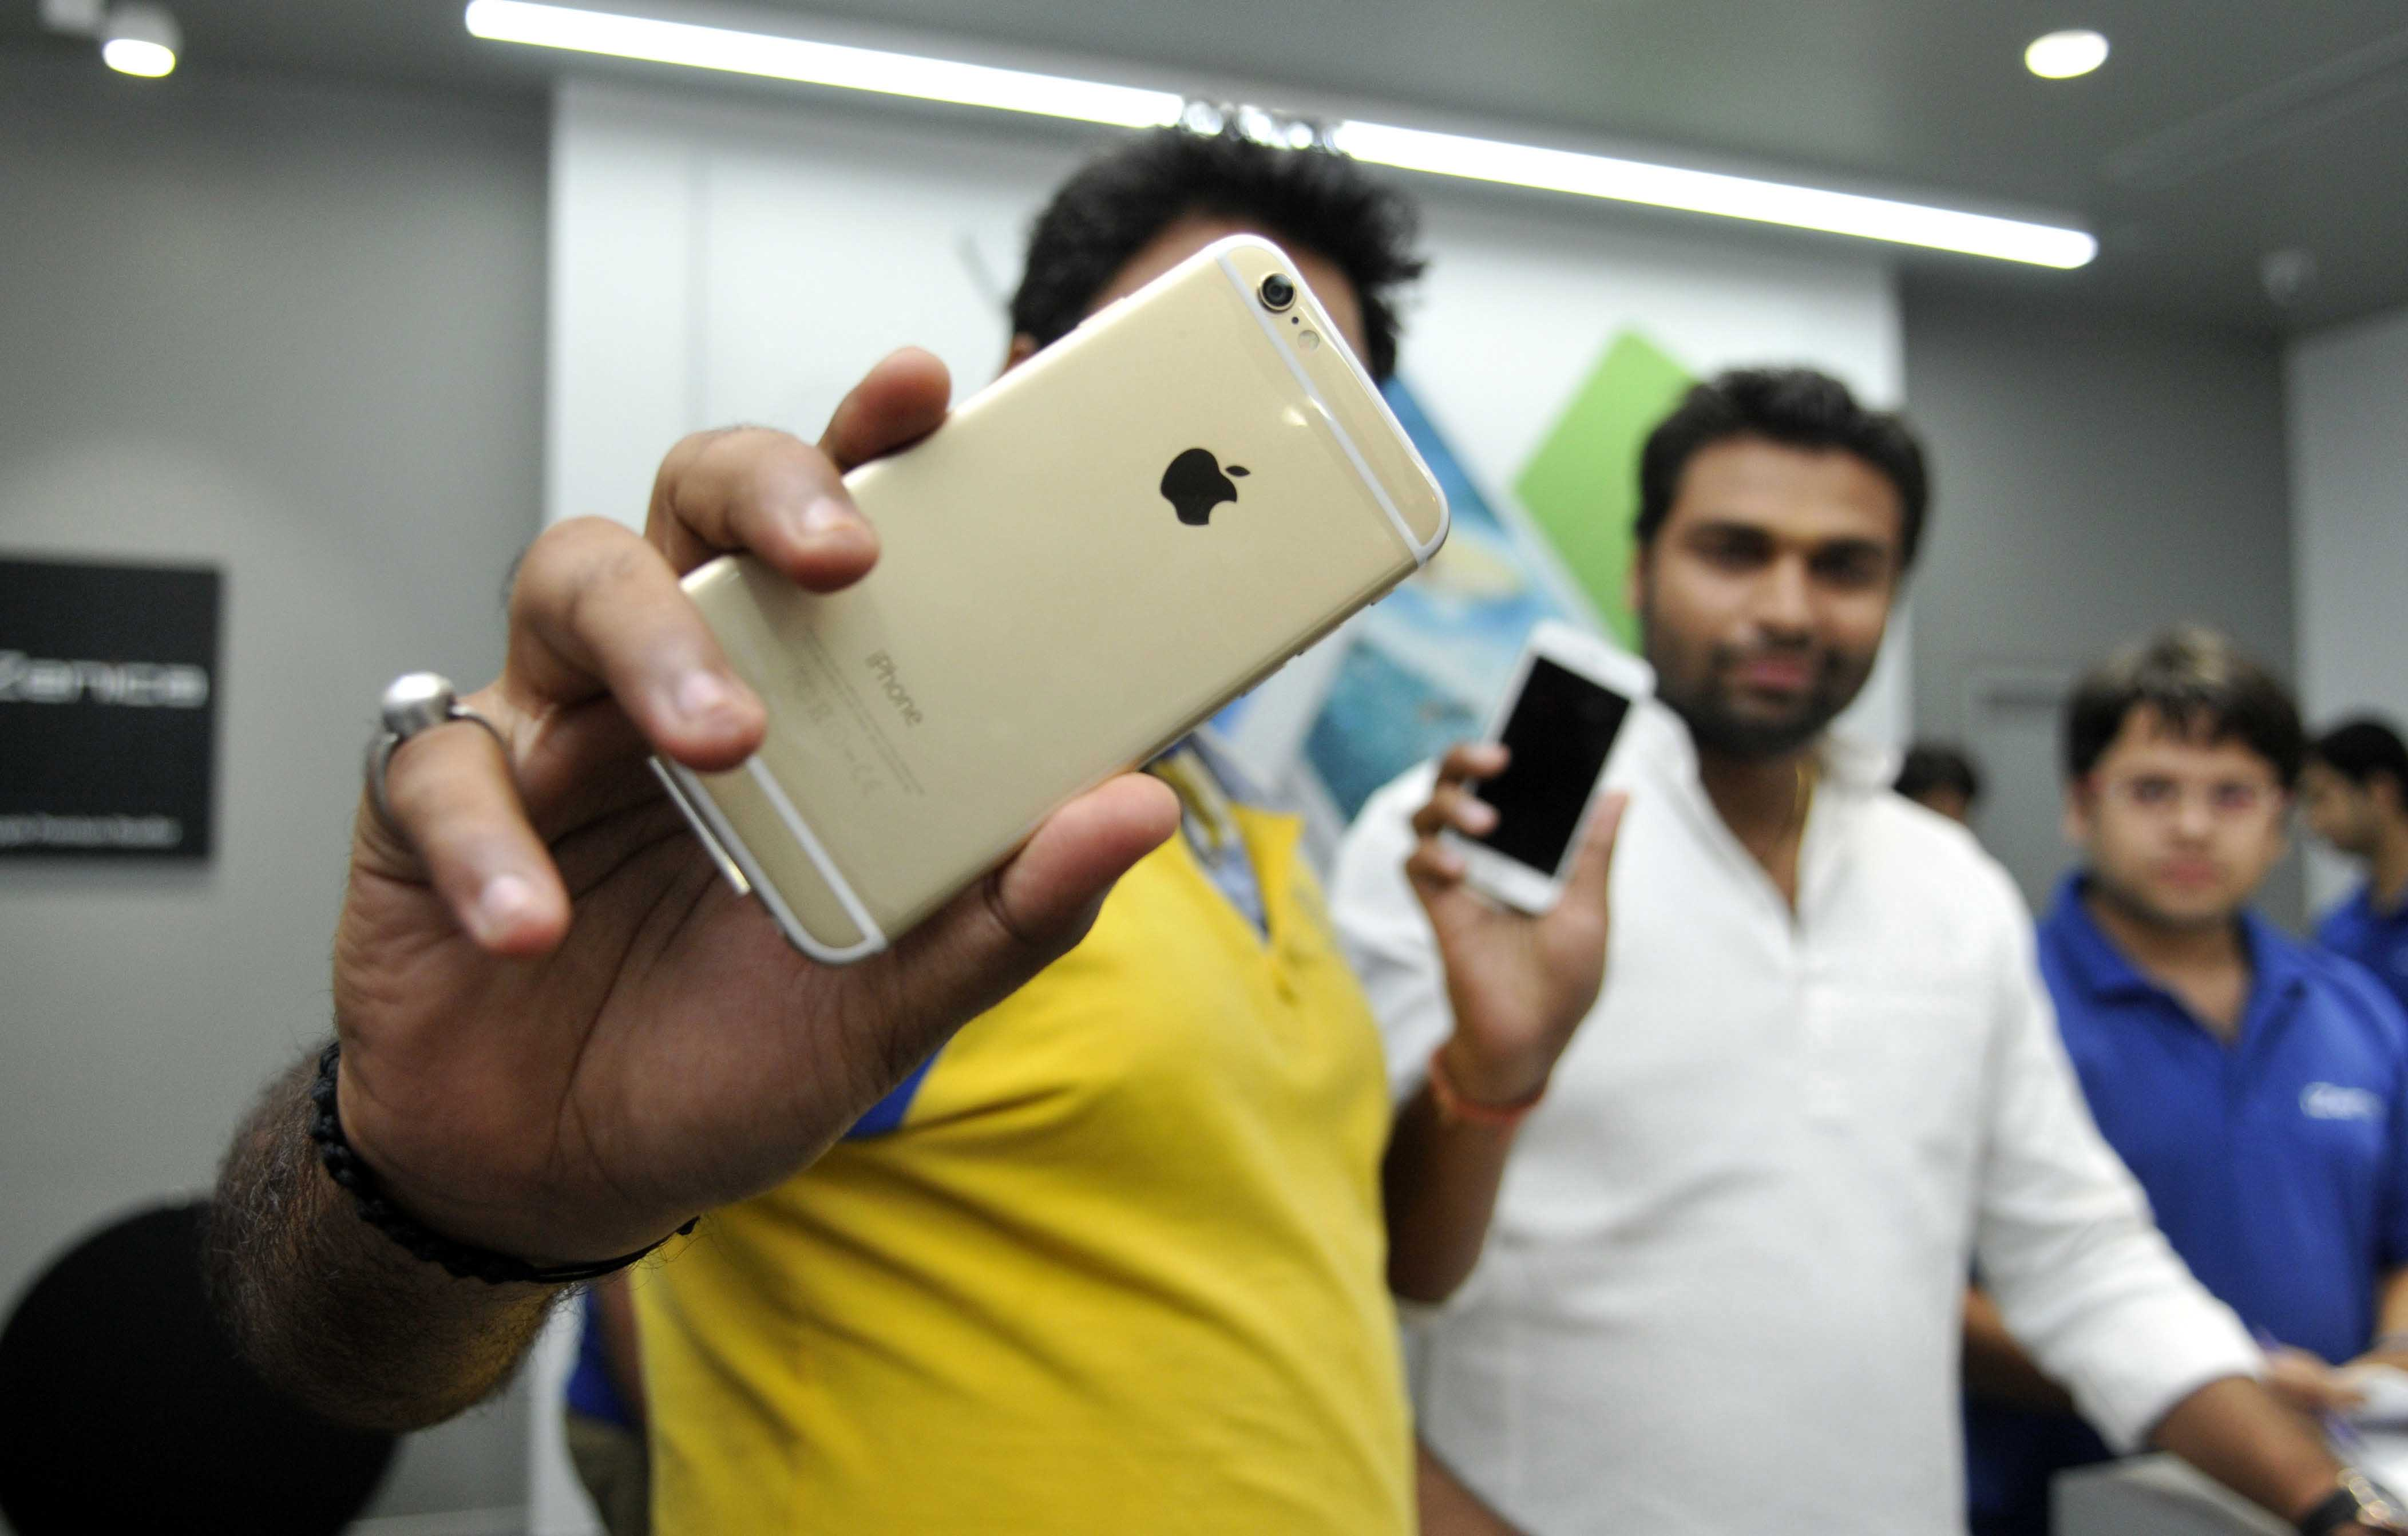 Excited crowd flocked at The Great India Palace mall to buy newly launched Apple iPhone 6 and iPhone 6 Plus, on October 17, 2014 in Noida, India.